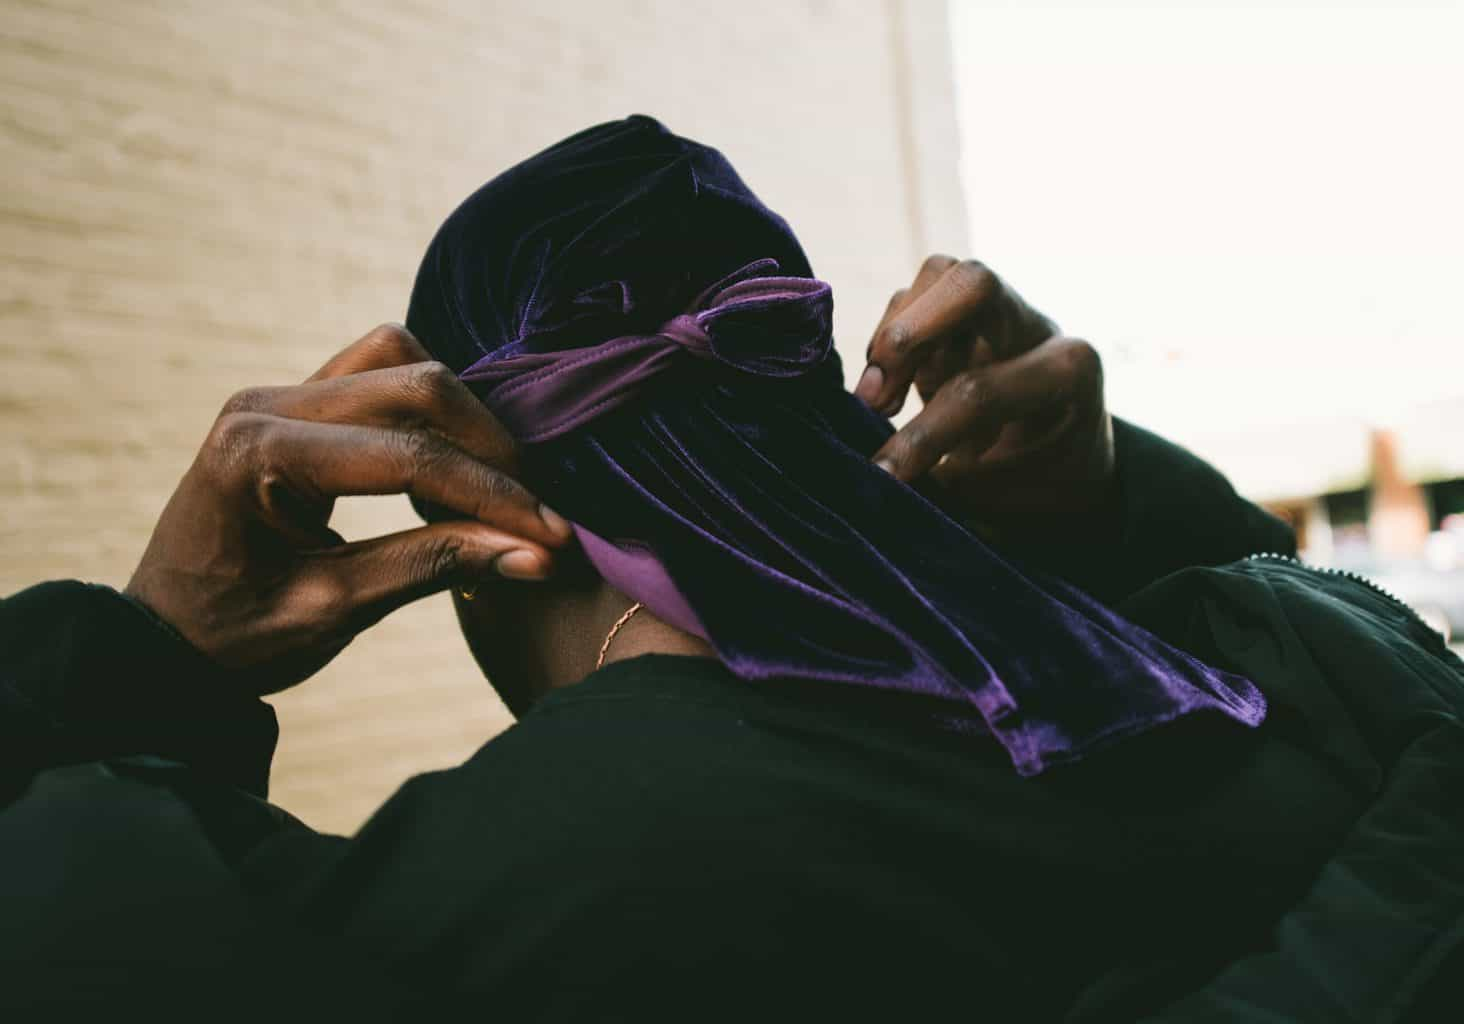 A rear view of a man holding his durag